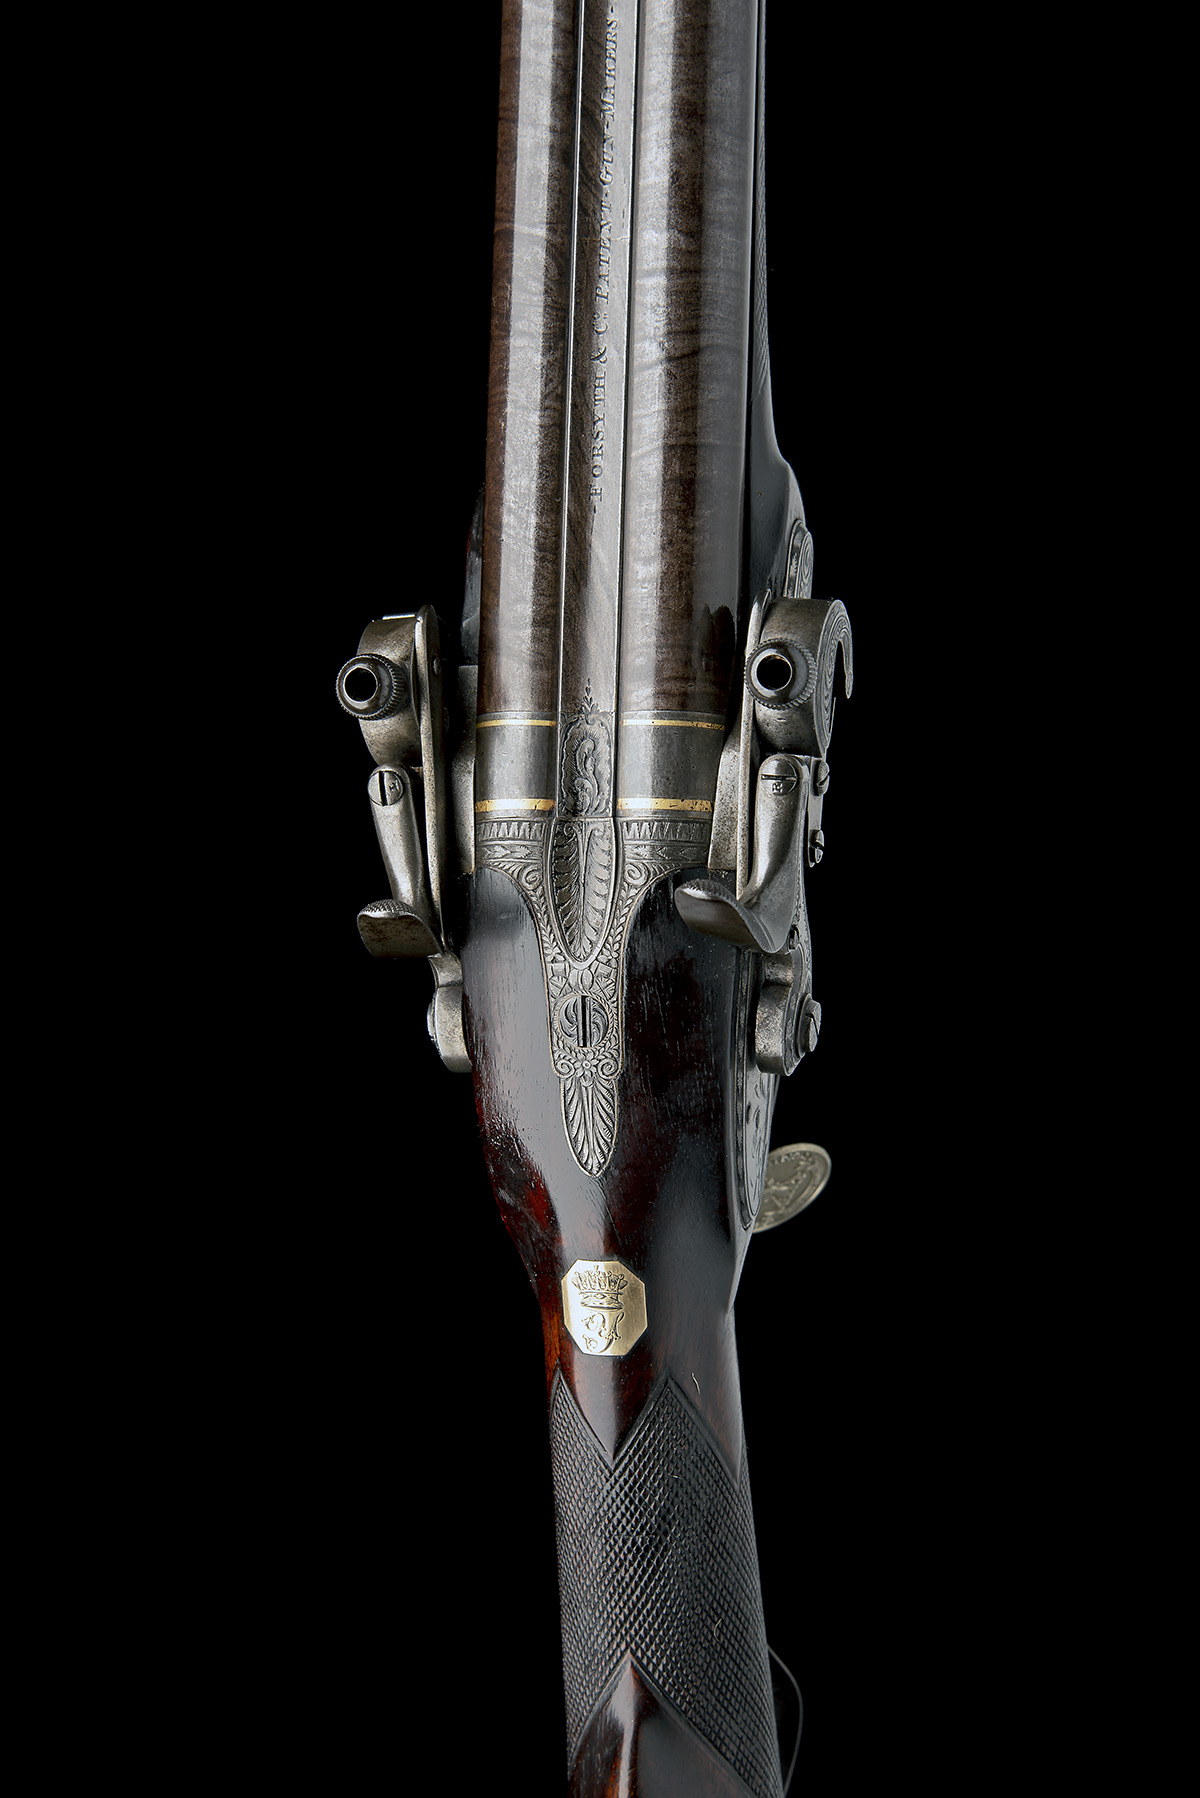 EX W. KEITH NEAL: FORSYTH & CO., LONDON AN EXCEEDINGLY RARE 19-BORE SELF-PRIMING SPORTING GUN, - Image 16 of 21